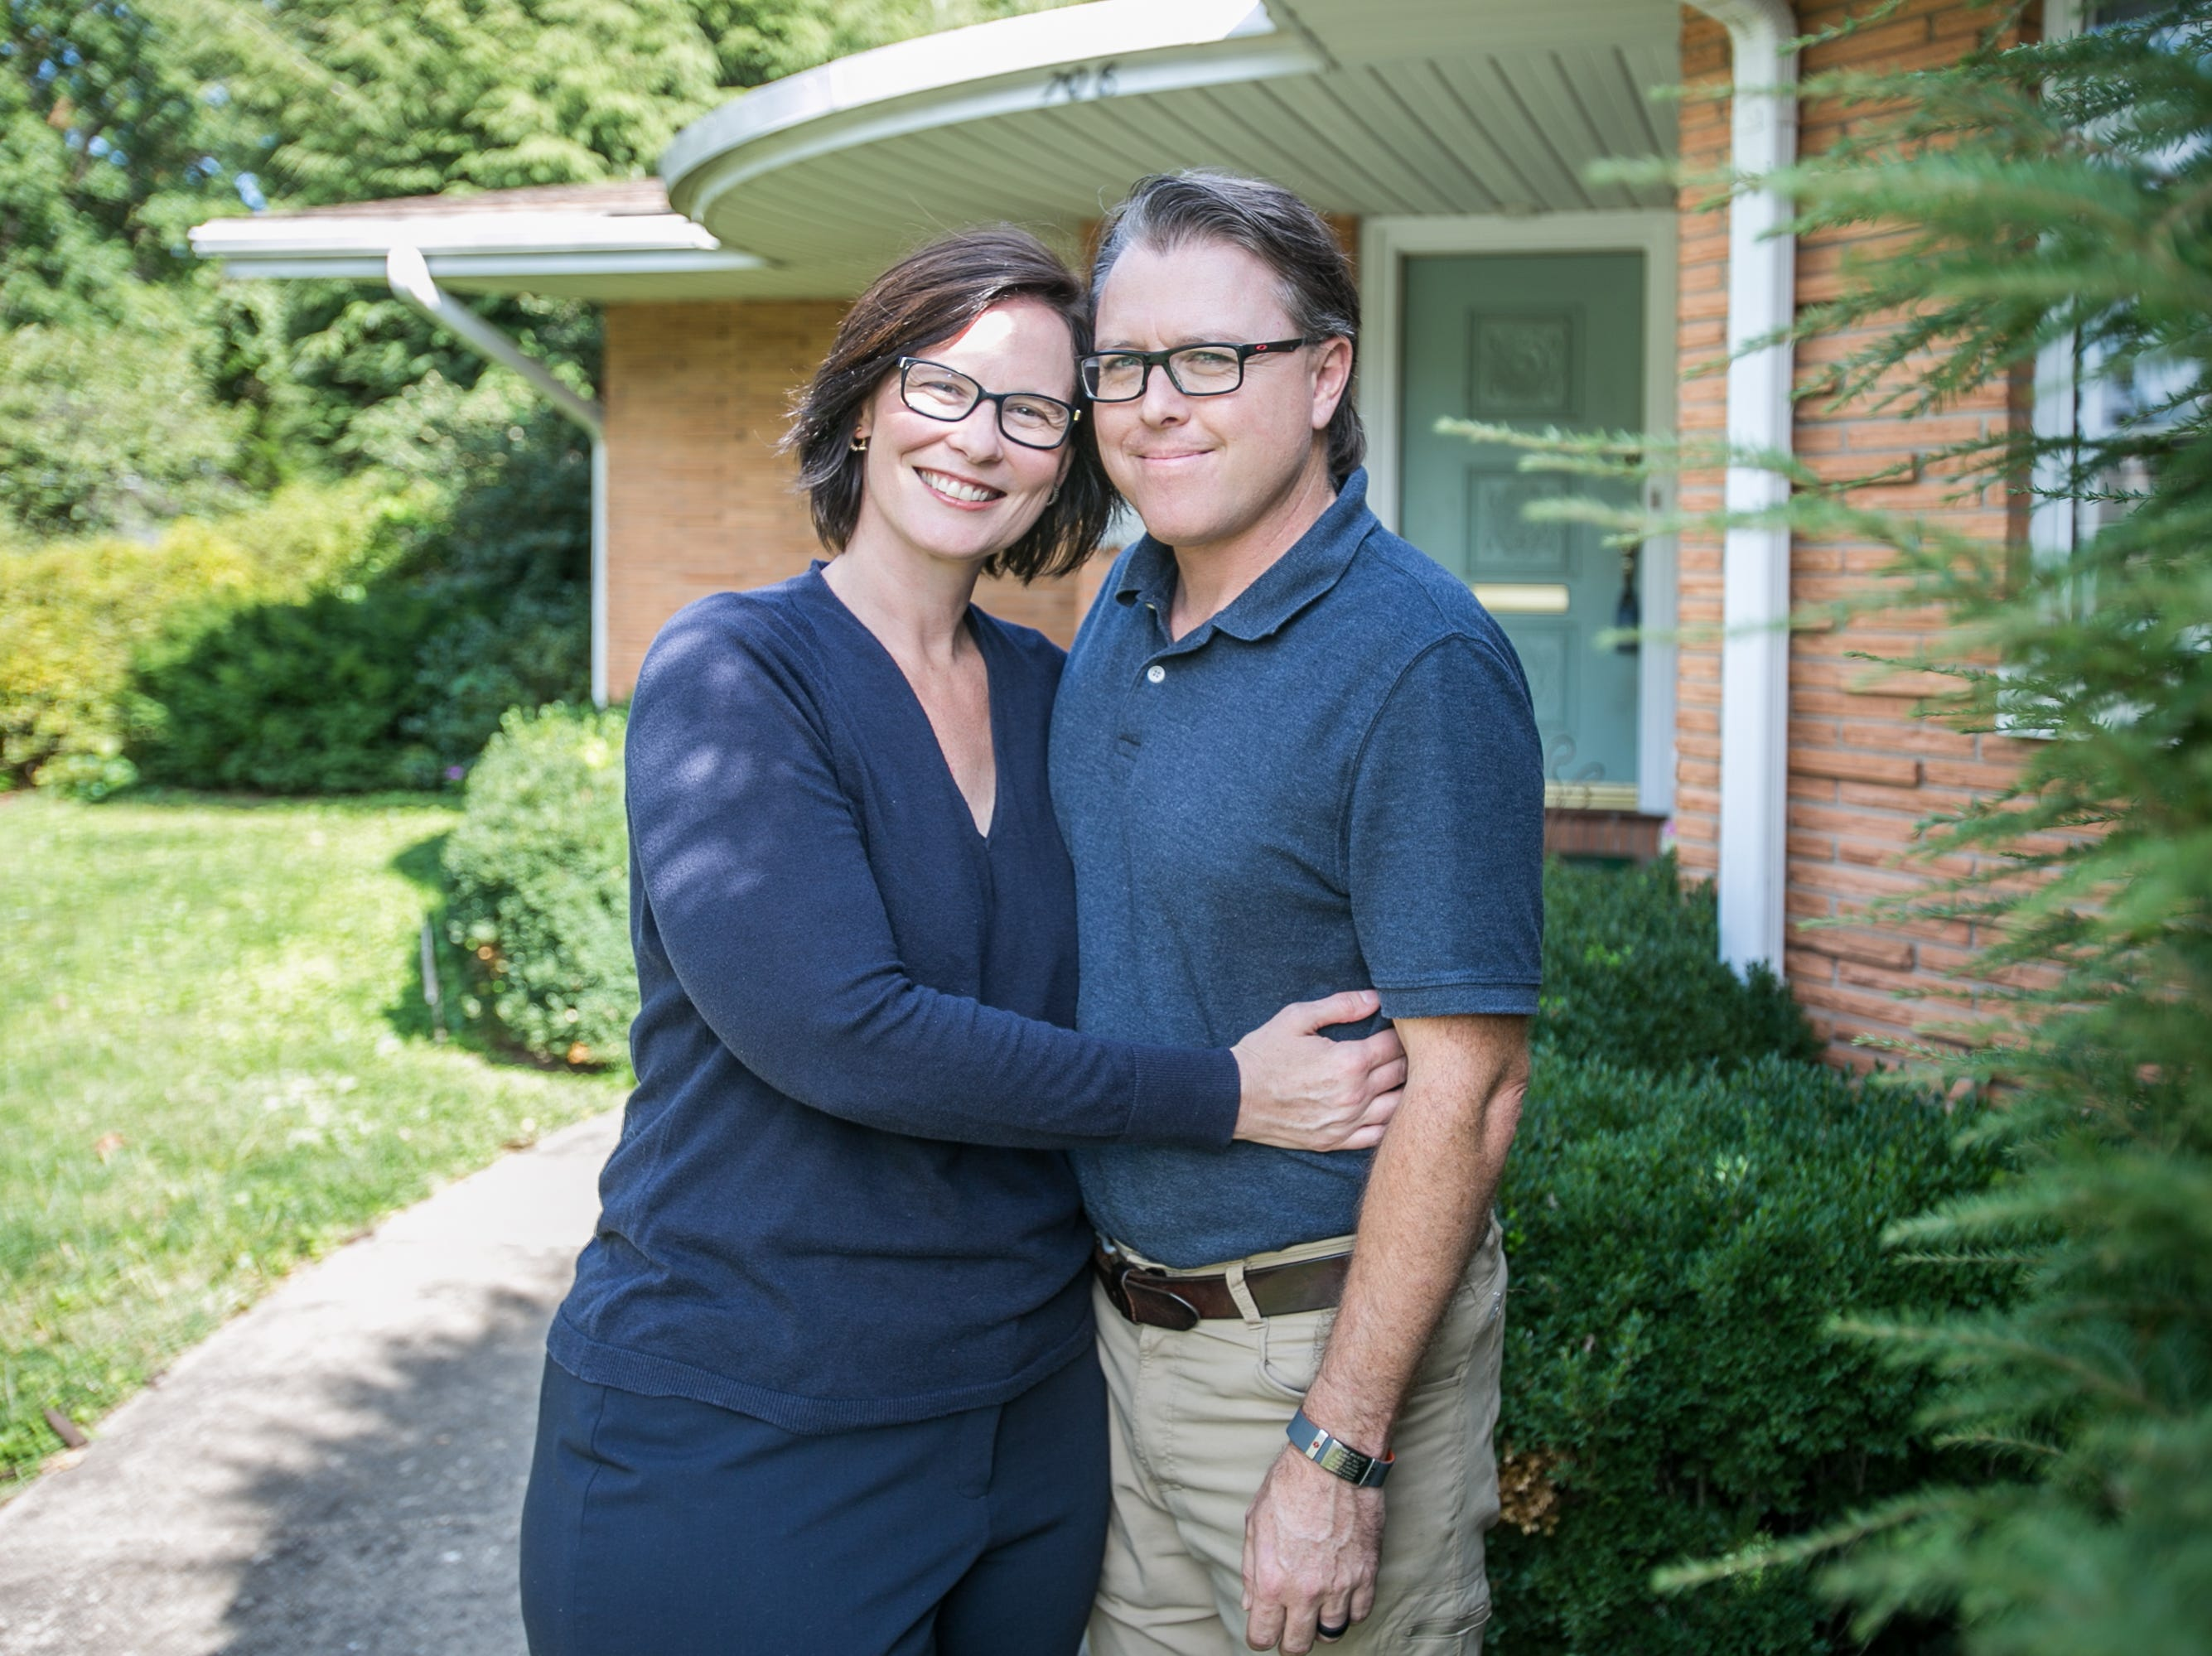 Keri Franklin and Aaron Matkowski love their home just a block south of Phelps Grove Park, but think the time has come to sell.